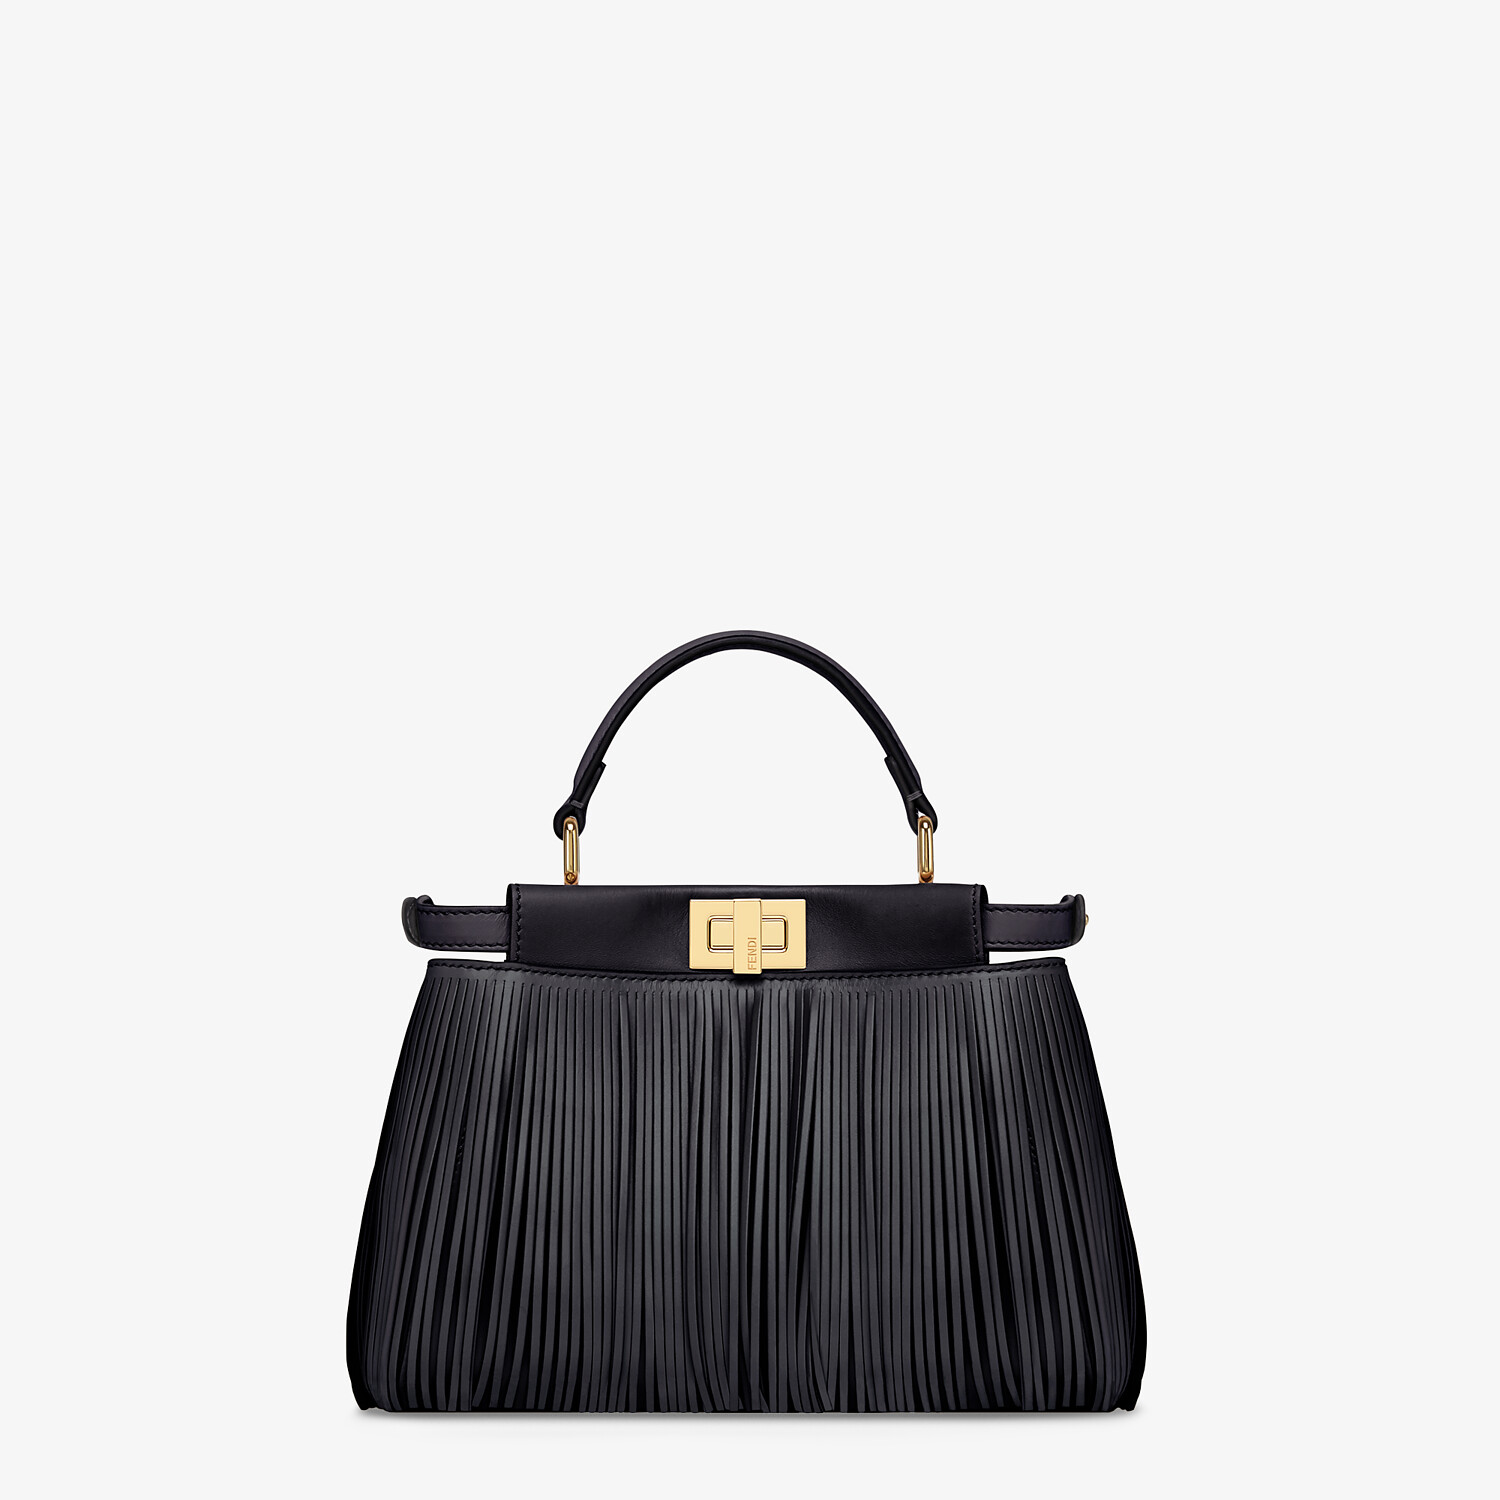 FENDI PEEKABOO ICONIC MINI - Black leather bag with fringes - view 4 detail